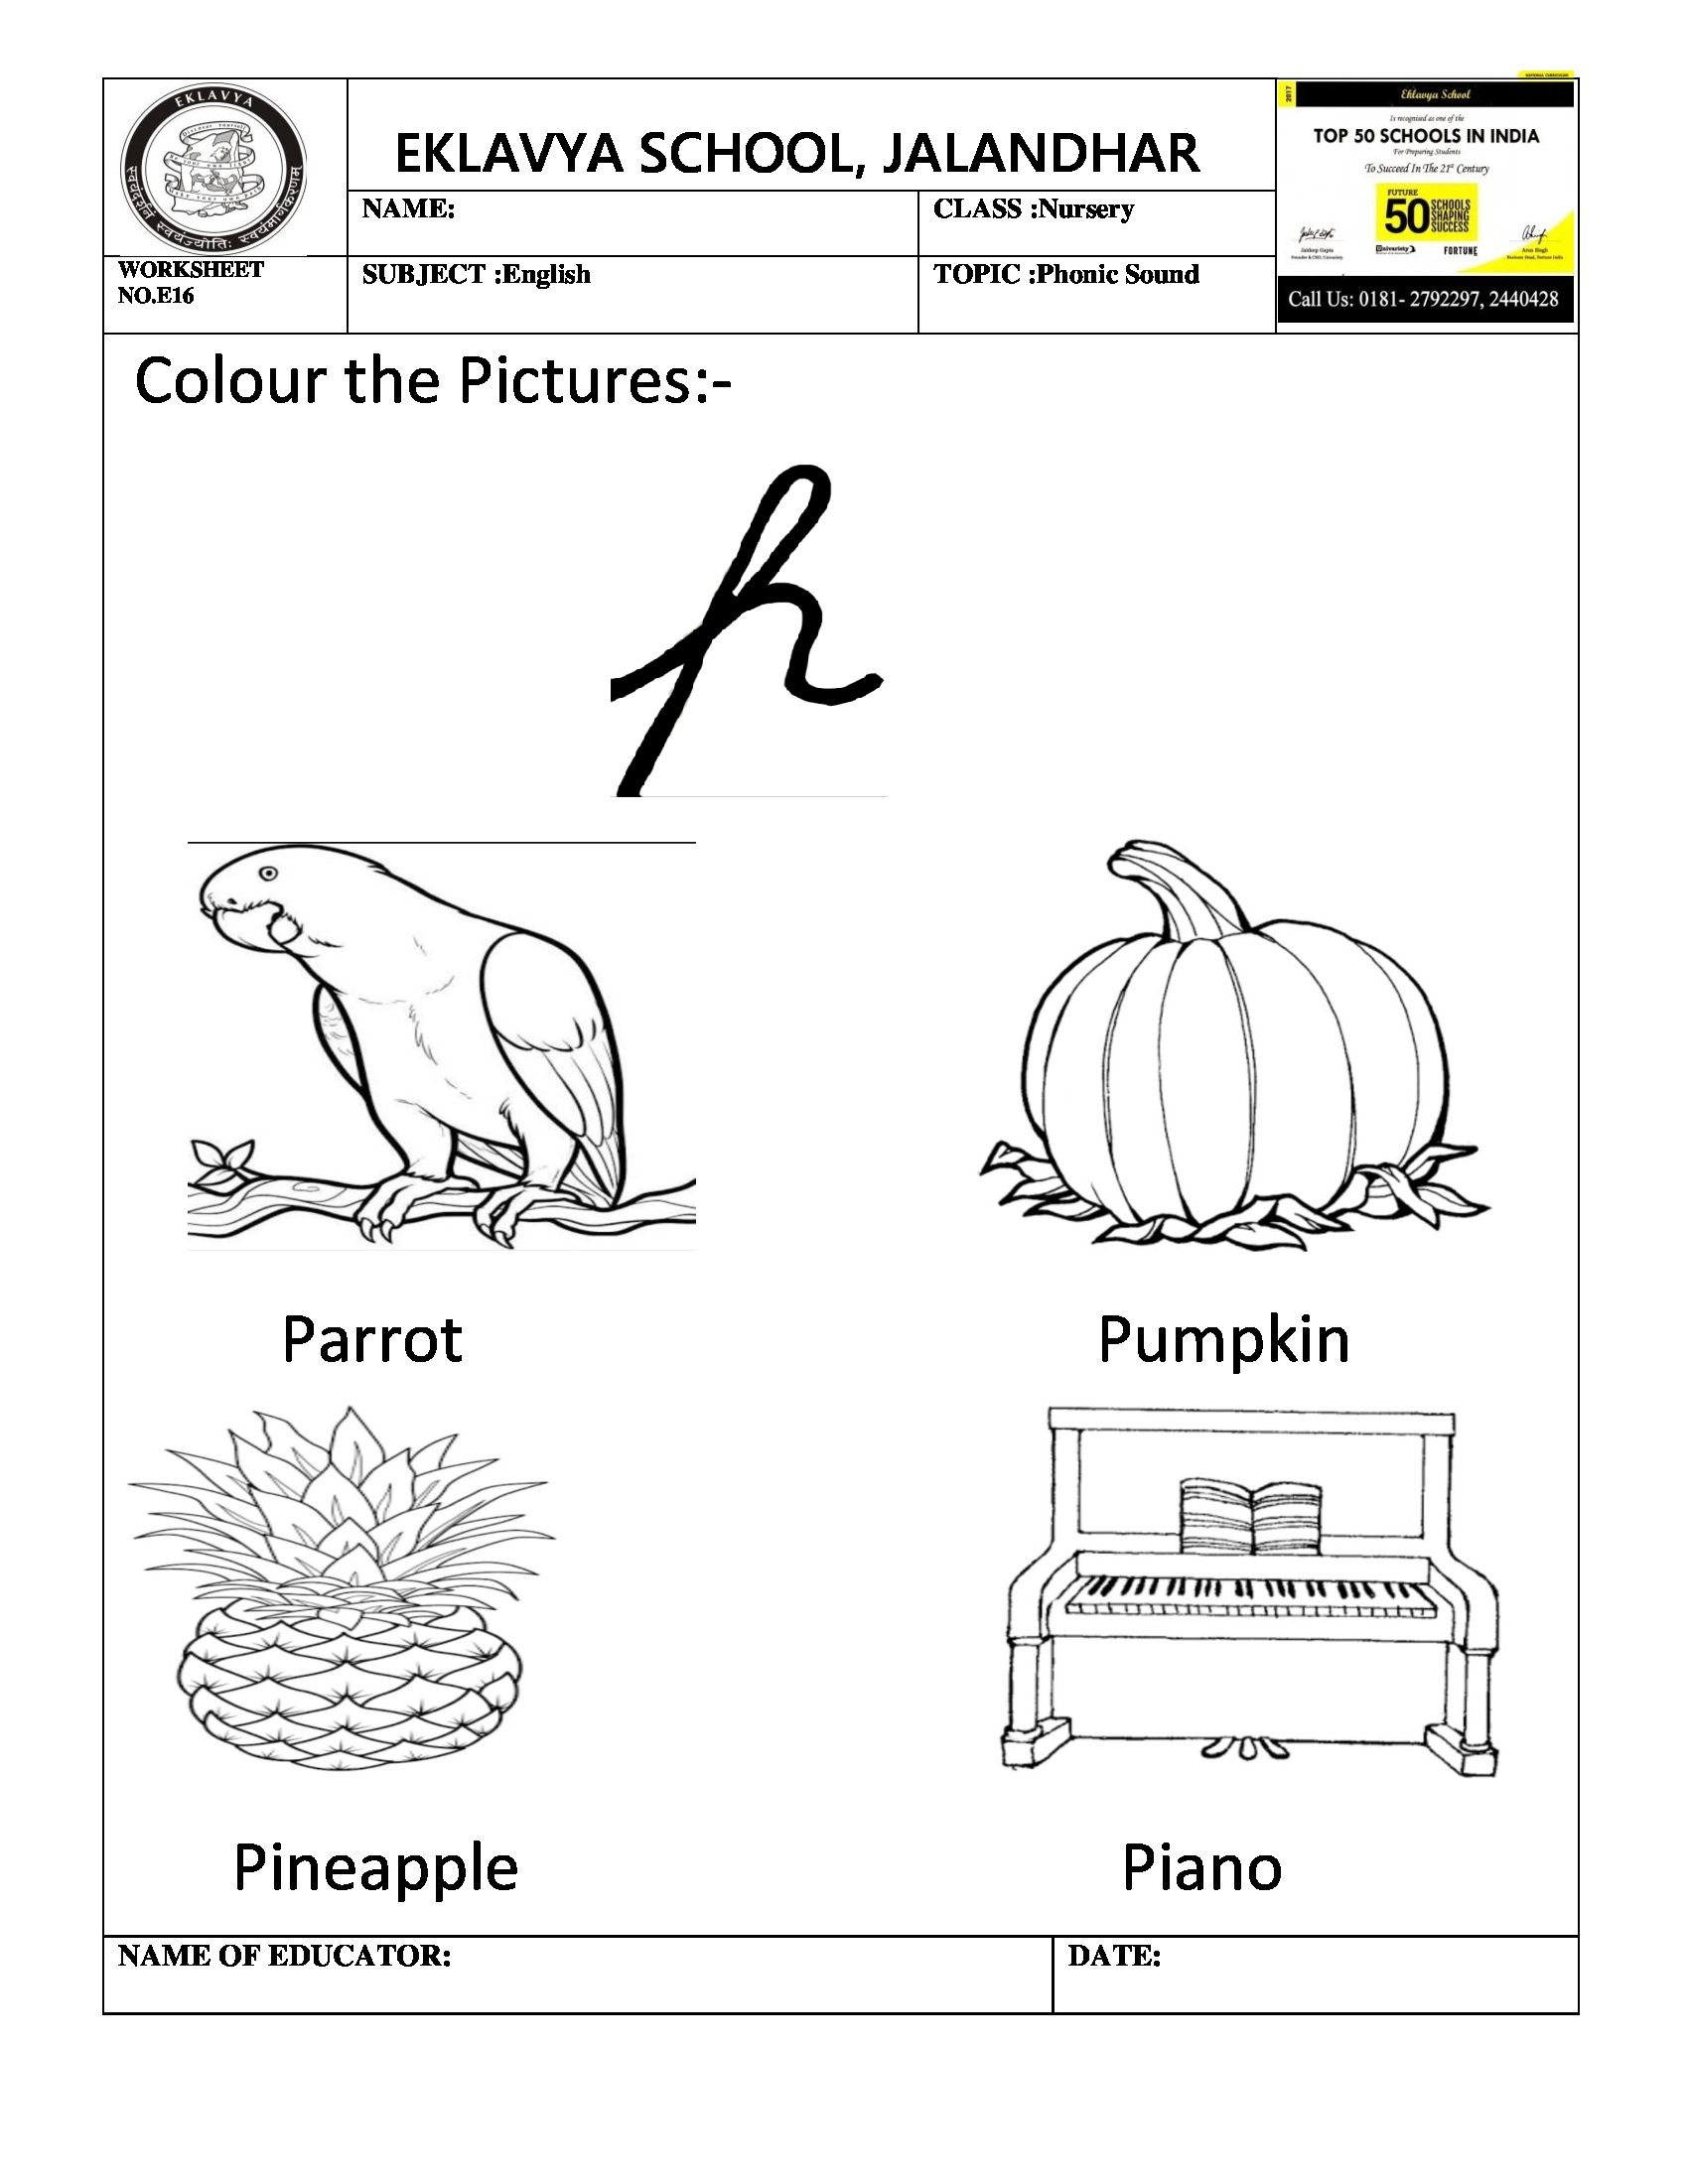 Worksheet On Phonic Sound P With Images